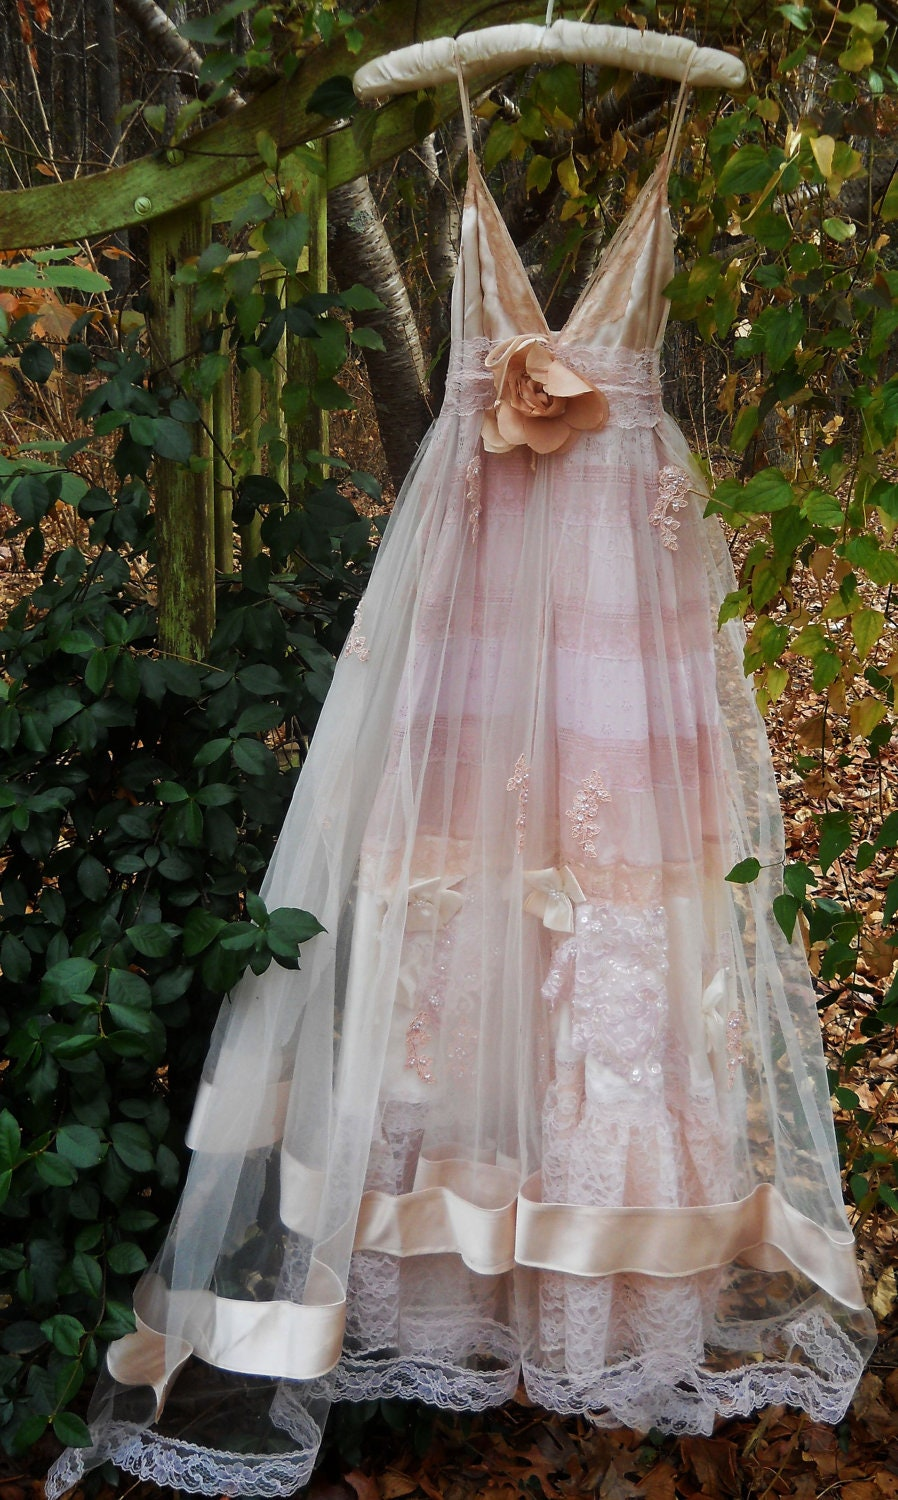 Blush wedding dress vintage tulle satin beading ethereal for Vintage sites like etsy